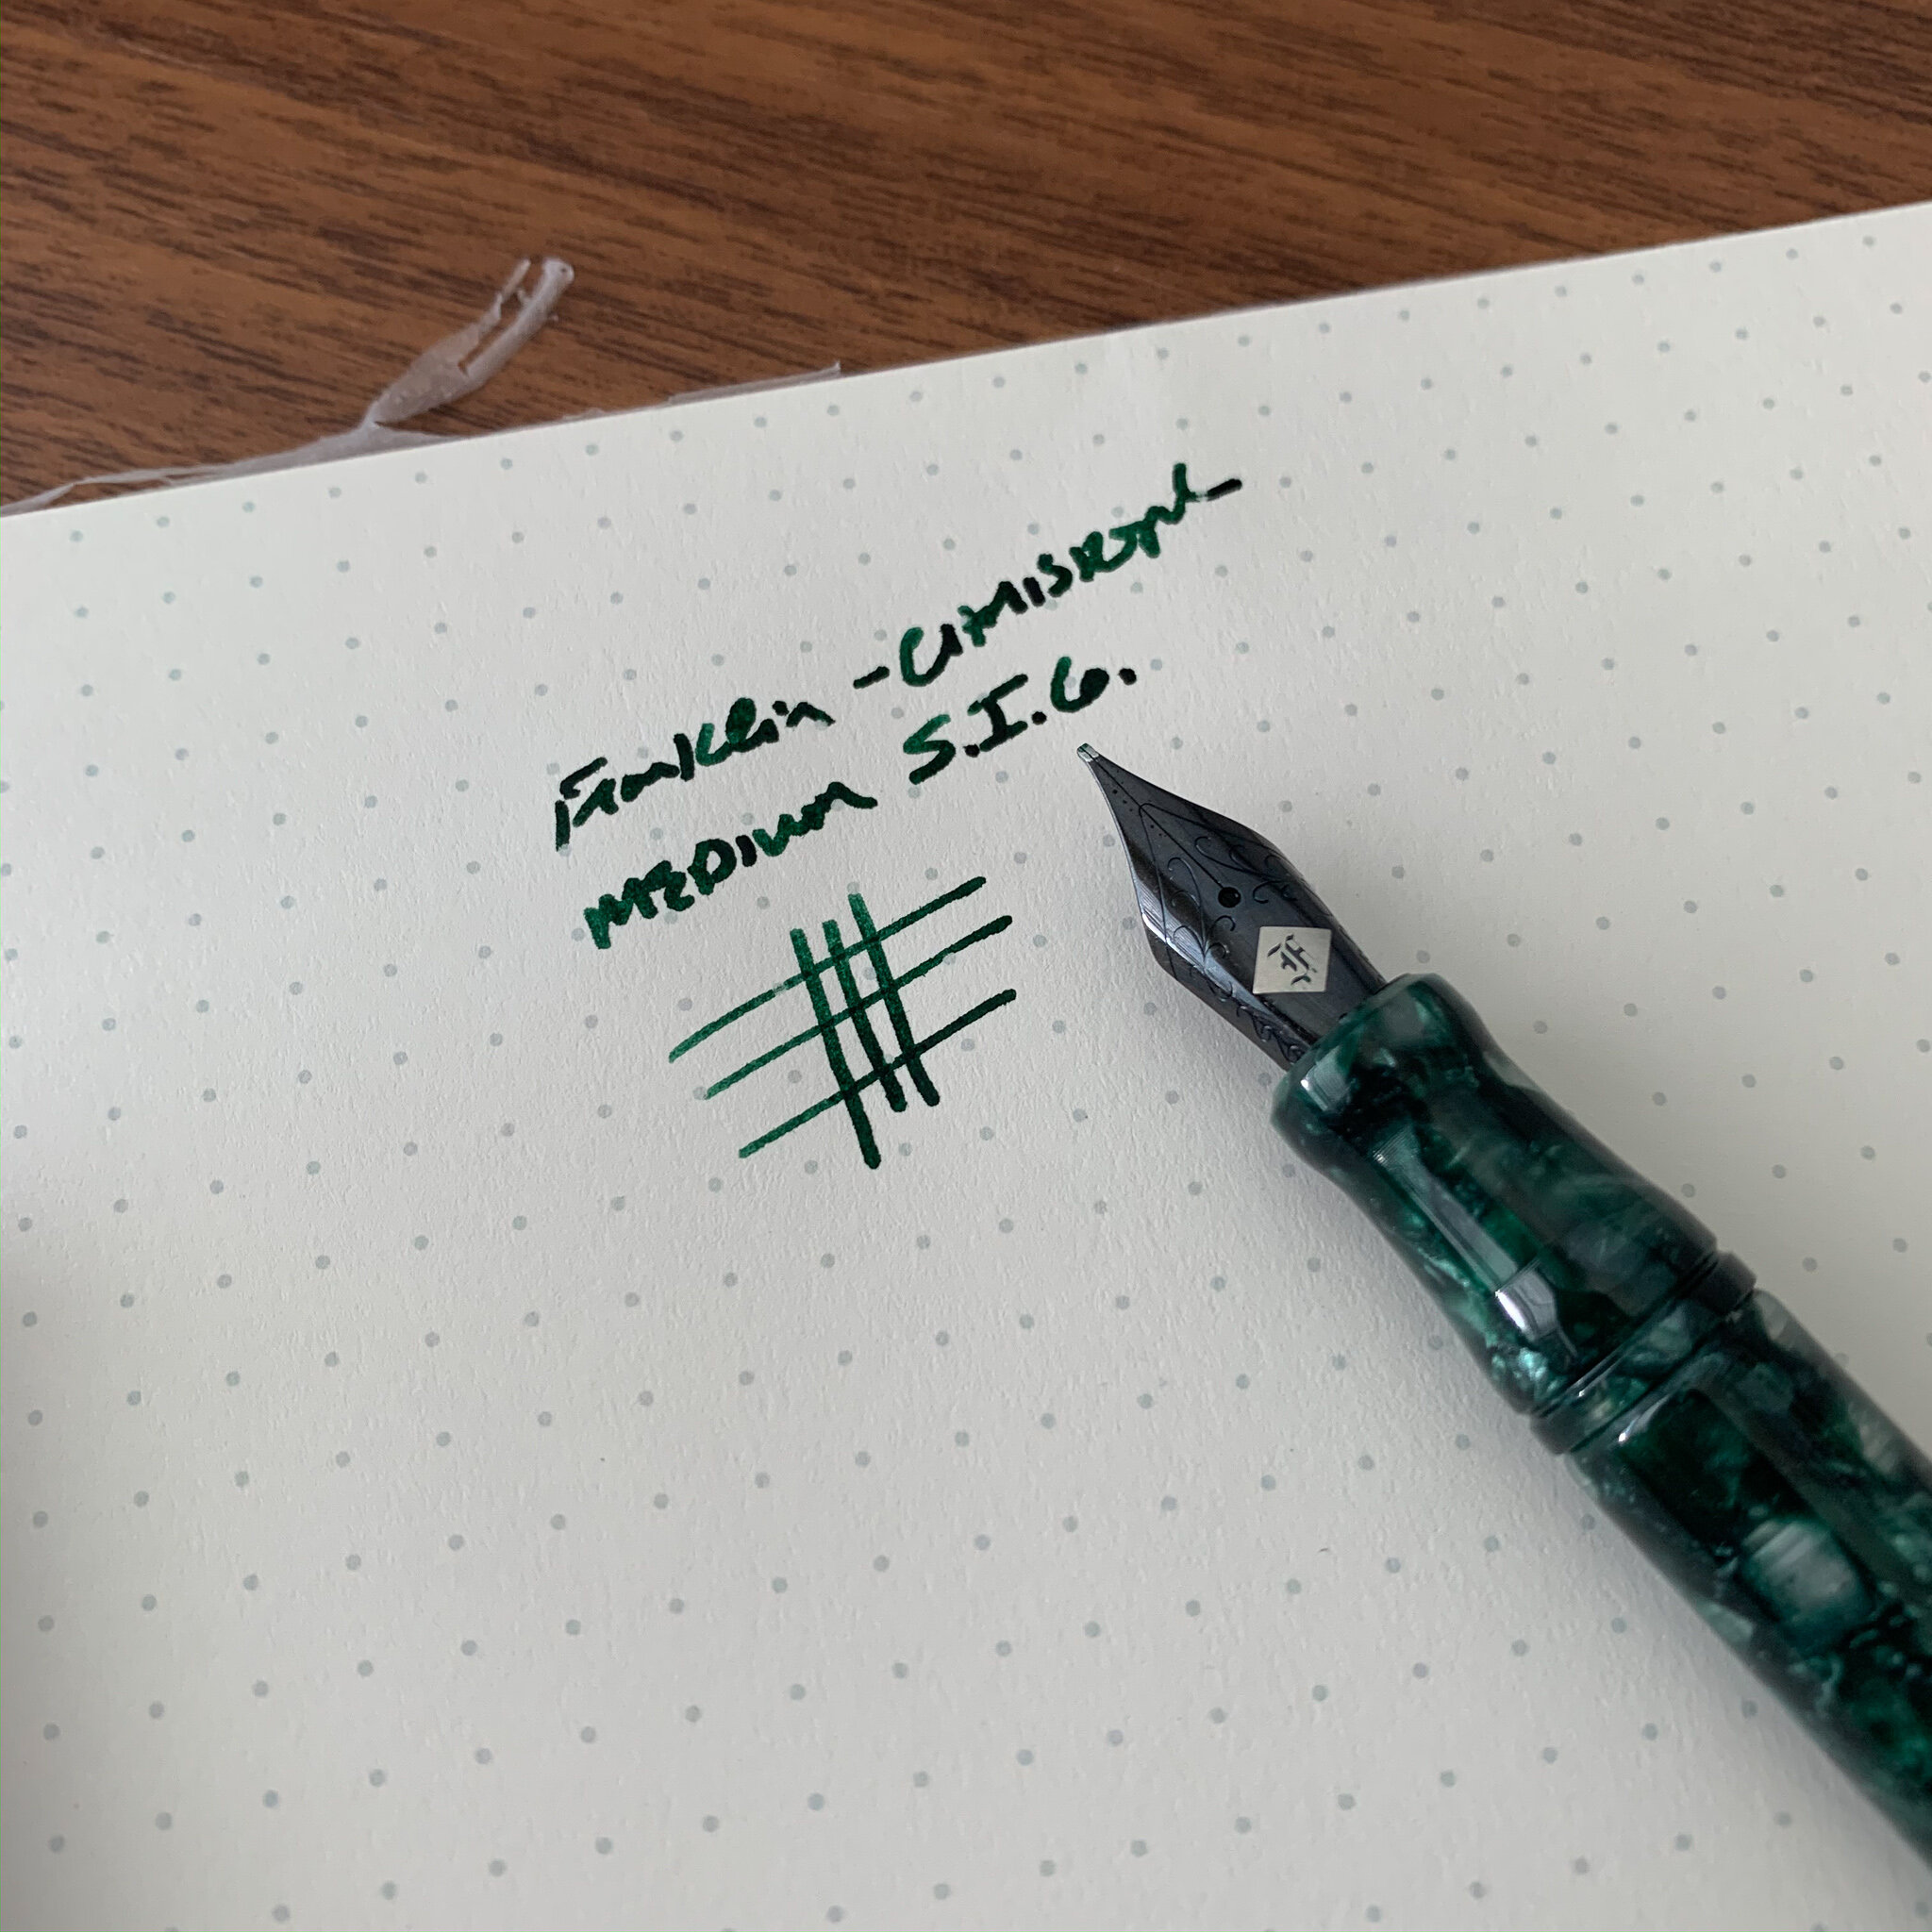 "On my Model 20 in ""Winter Pine"" that I acquired at this year's D.C. Pen Show, I opted for a medium S.I.G. in the ""Shadow"" nib. It looks great and Audrey did an exceptional job tuning. This pen has the potential to become a favorite!"